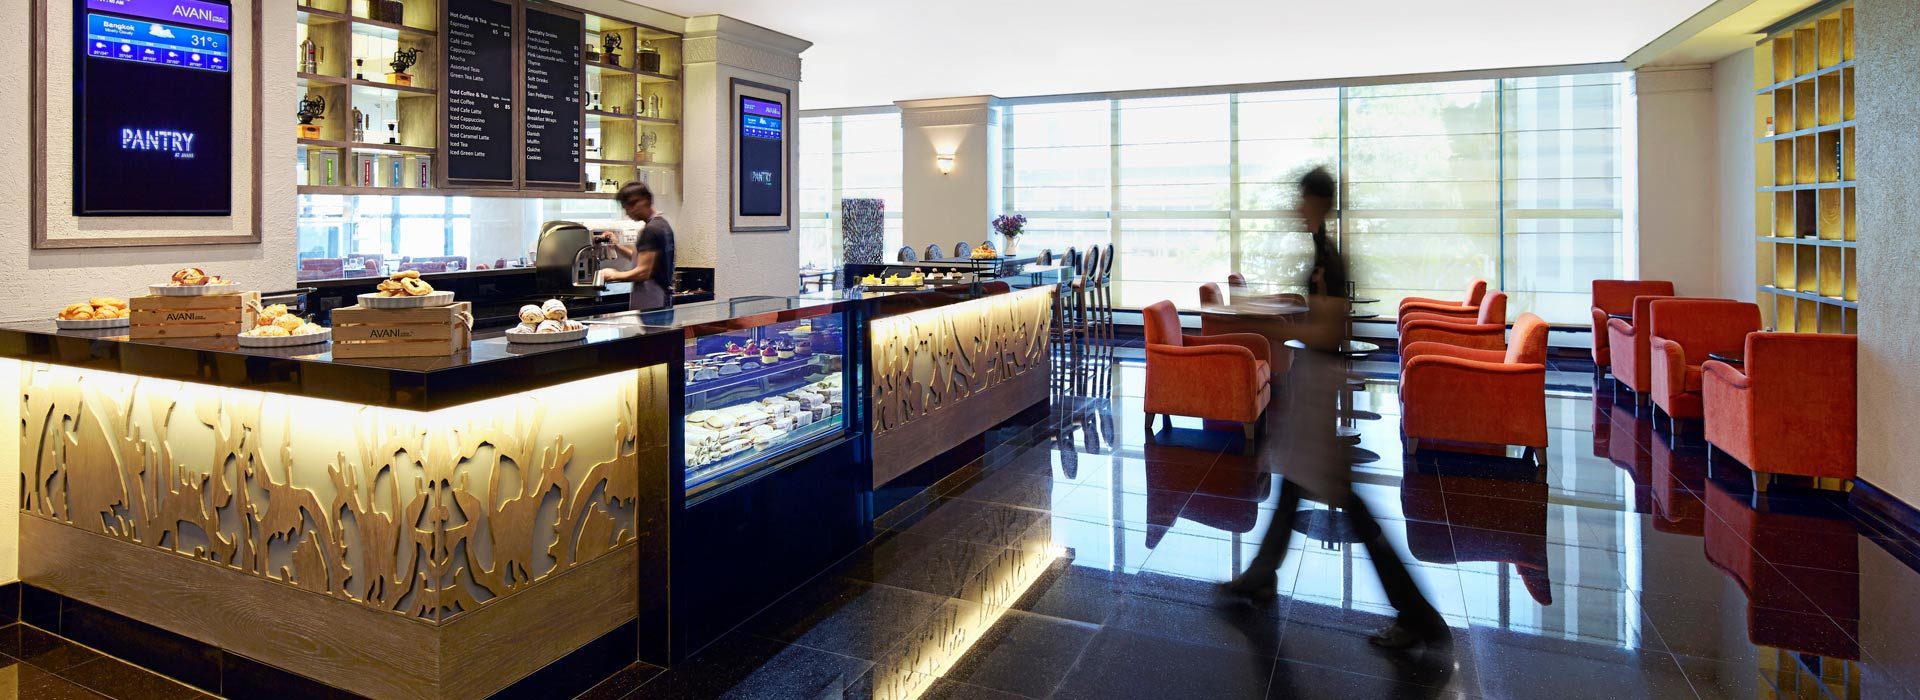 The Pantry by AVANI Atrium Bangkok